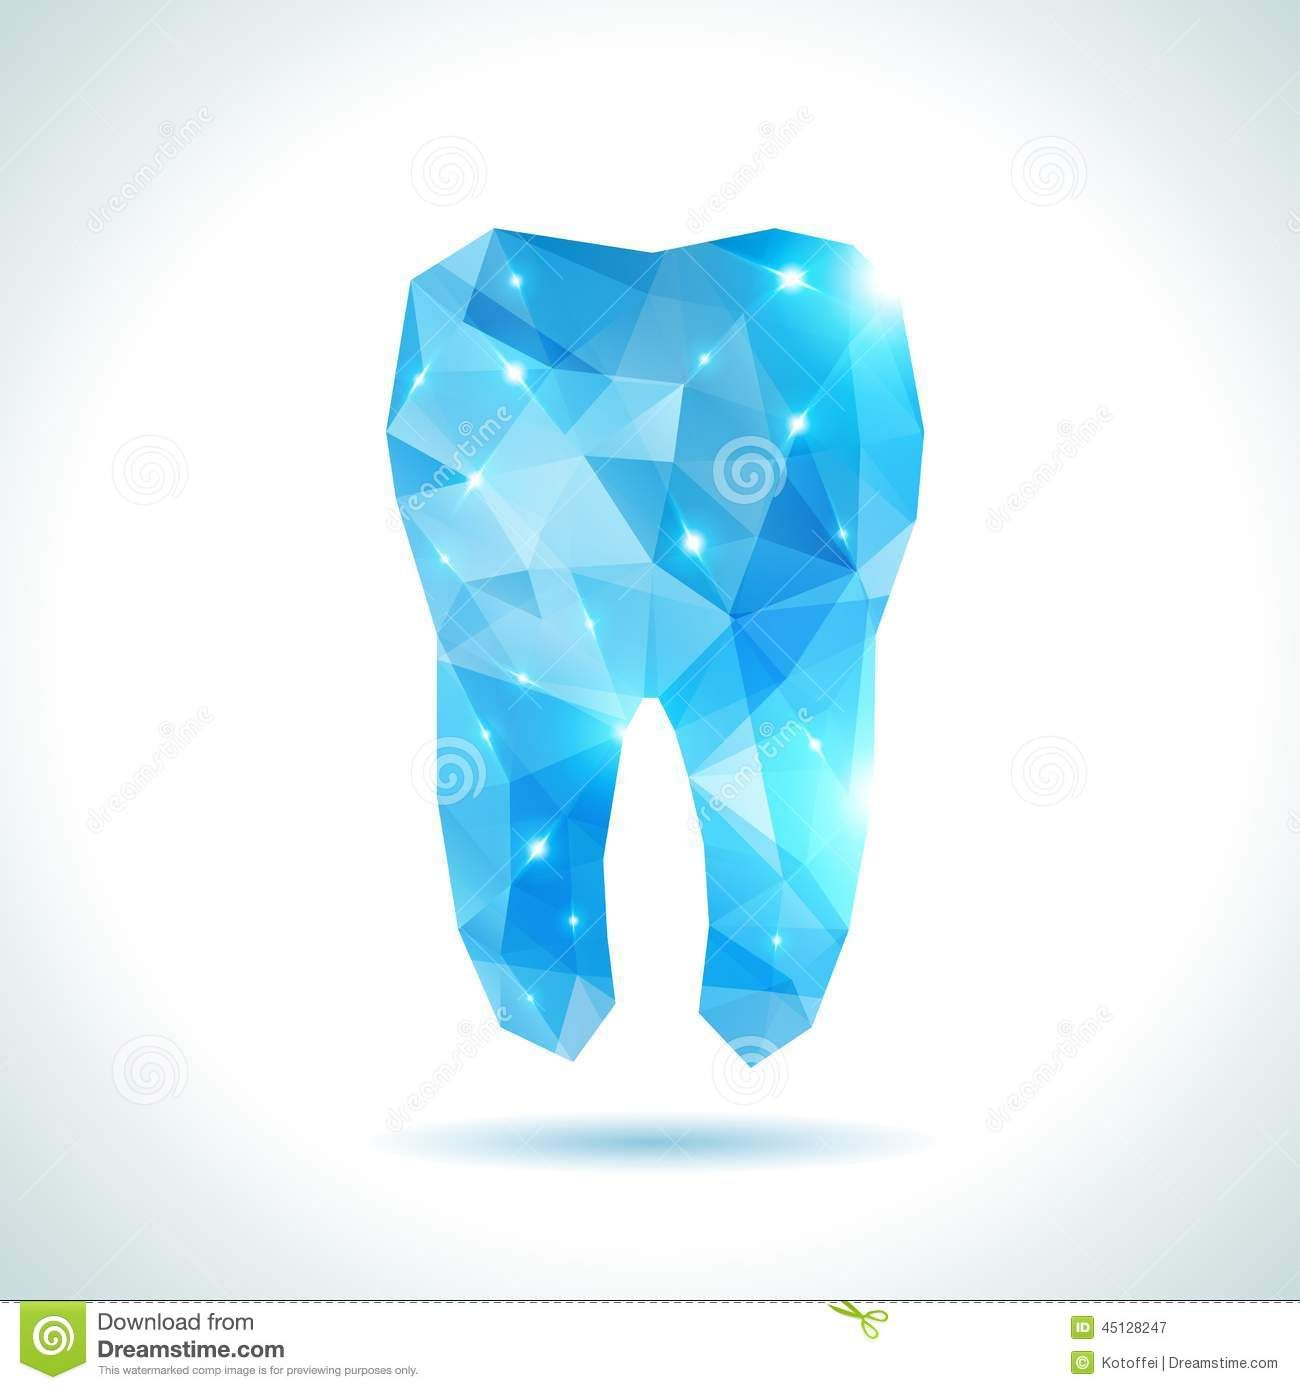 Polygonal Turquoise Vector Tooth Abstract Dental Background Origami Style Background Low Poly